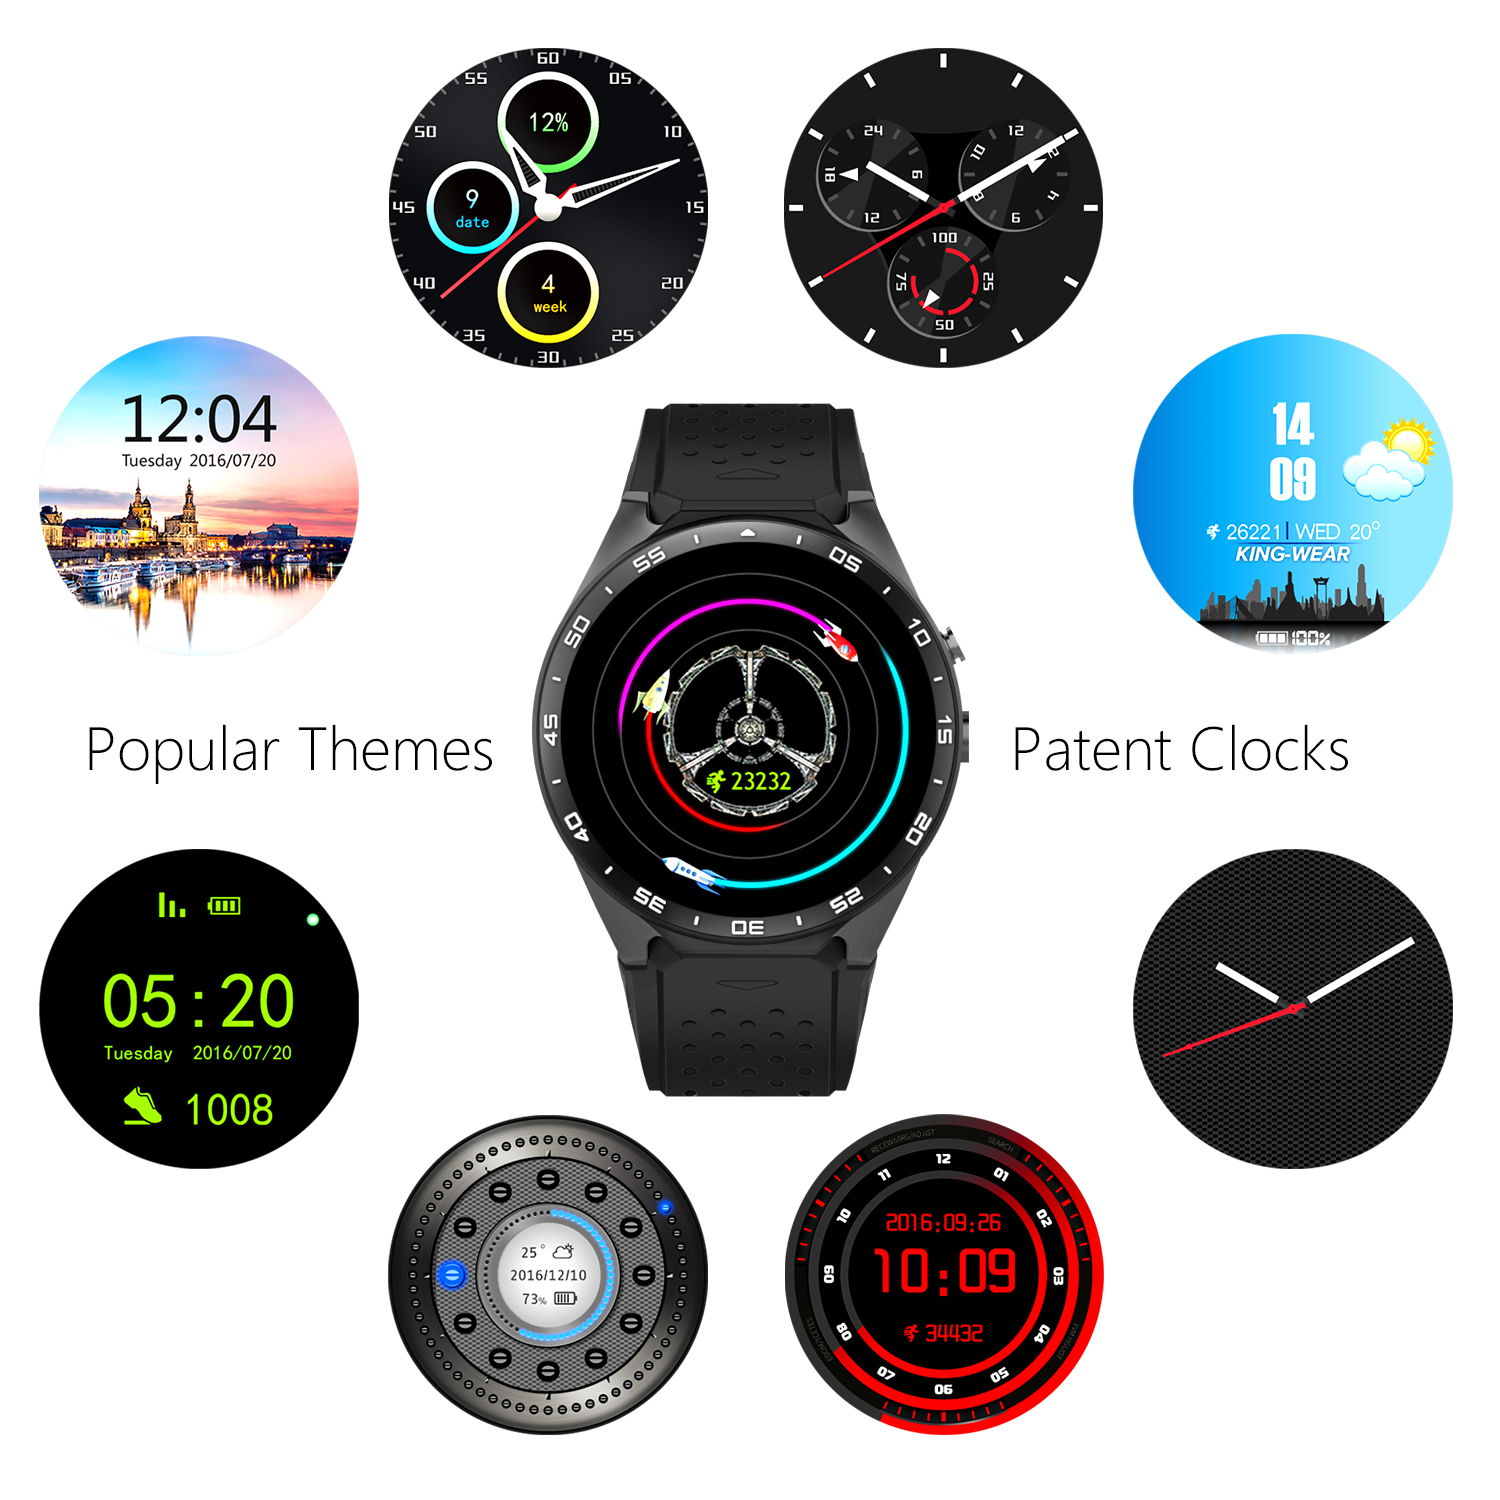 ot03 Best Kw88 android 5.1 OS Smart watch 1.39 inch scrren mtk6580 SmartWatch phone support bluetooth 3G wifi nano SIM WCDMA 2017 hot kingwear kw88 android 5 1 os smart watch 1 39 inch 400 400 smartwatch phone support 3g4g wifi nano sim wcdma heart rate